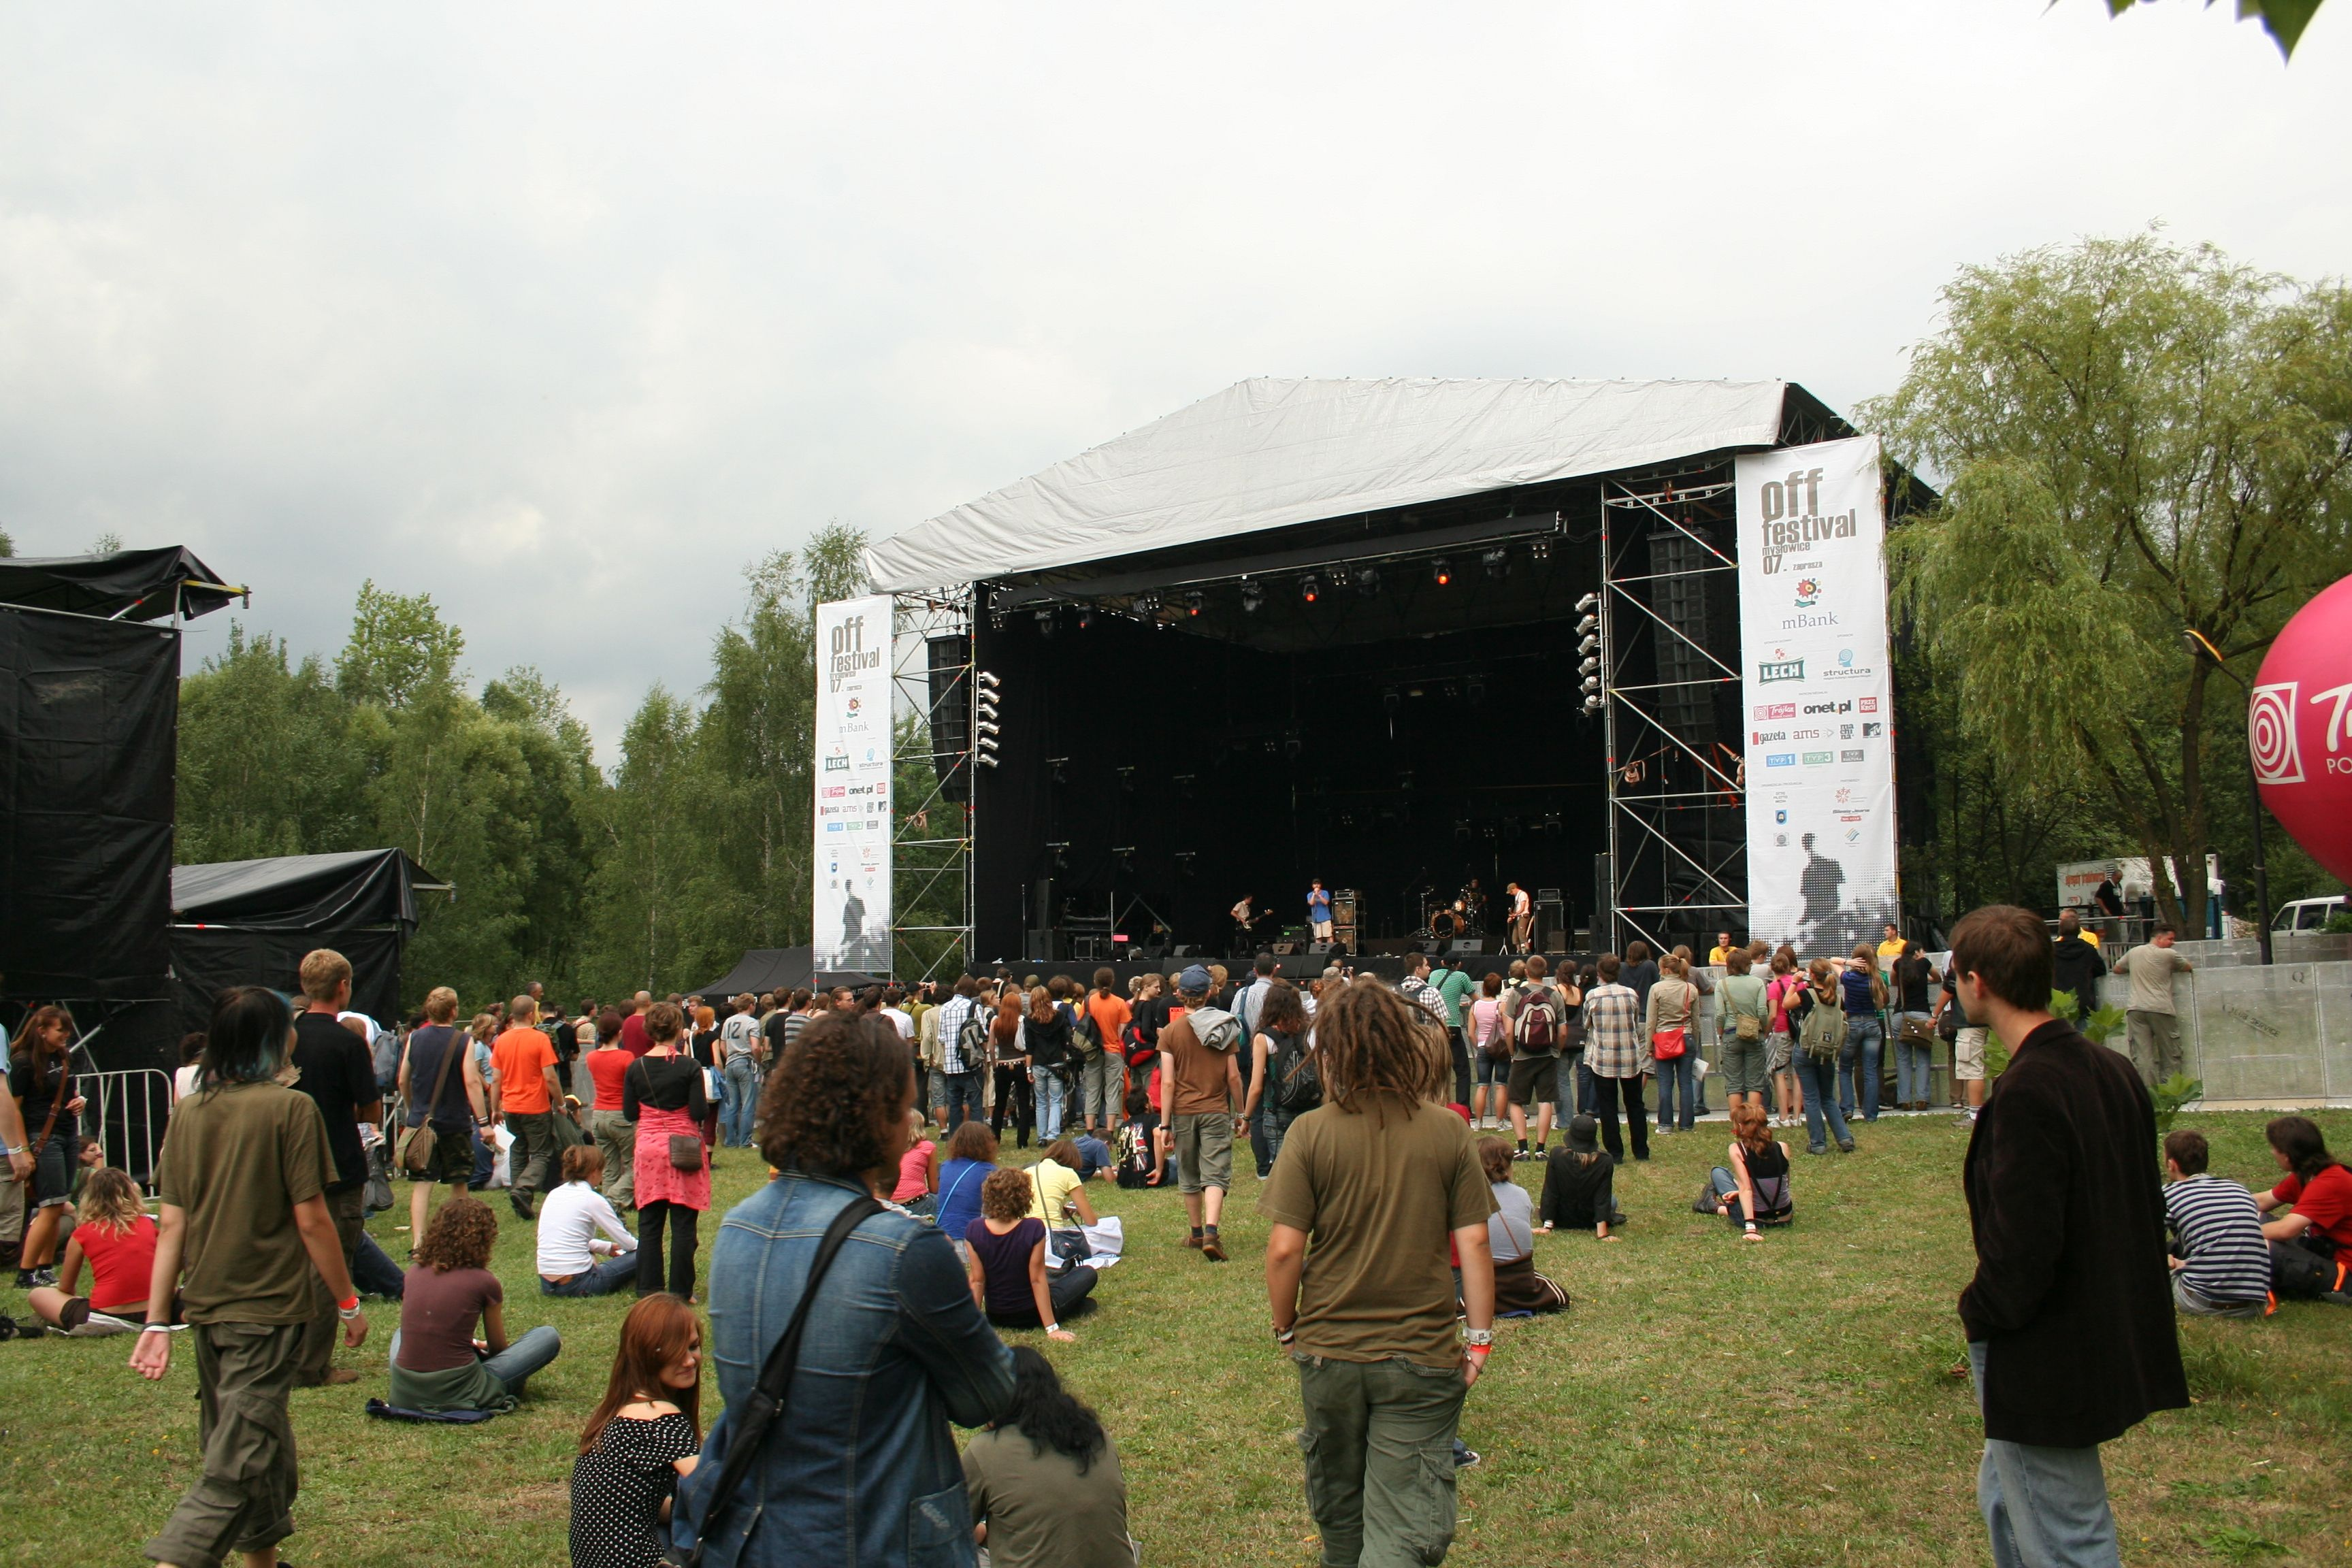 Off festival summer festivals poland